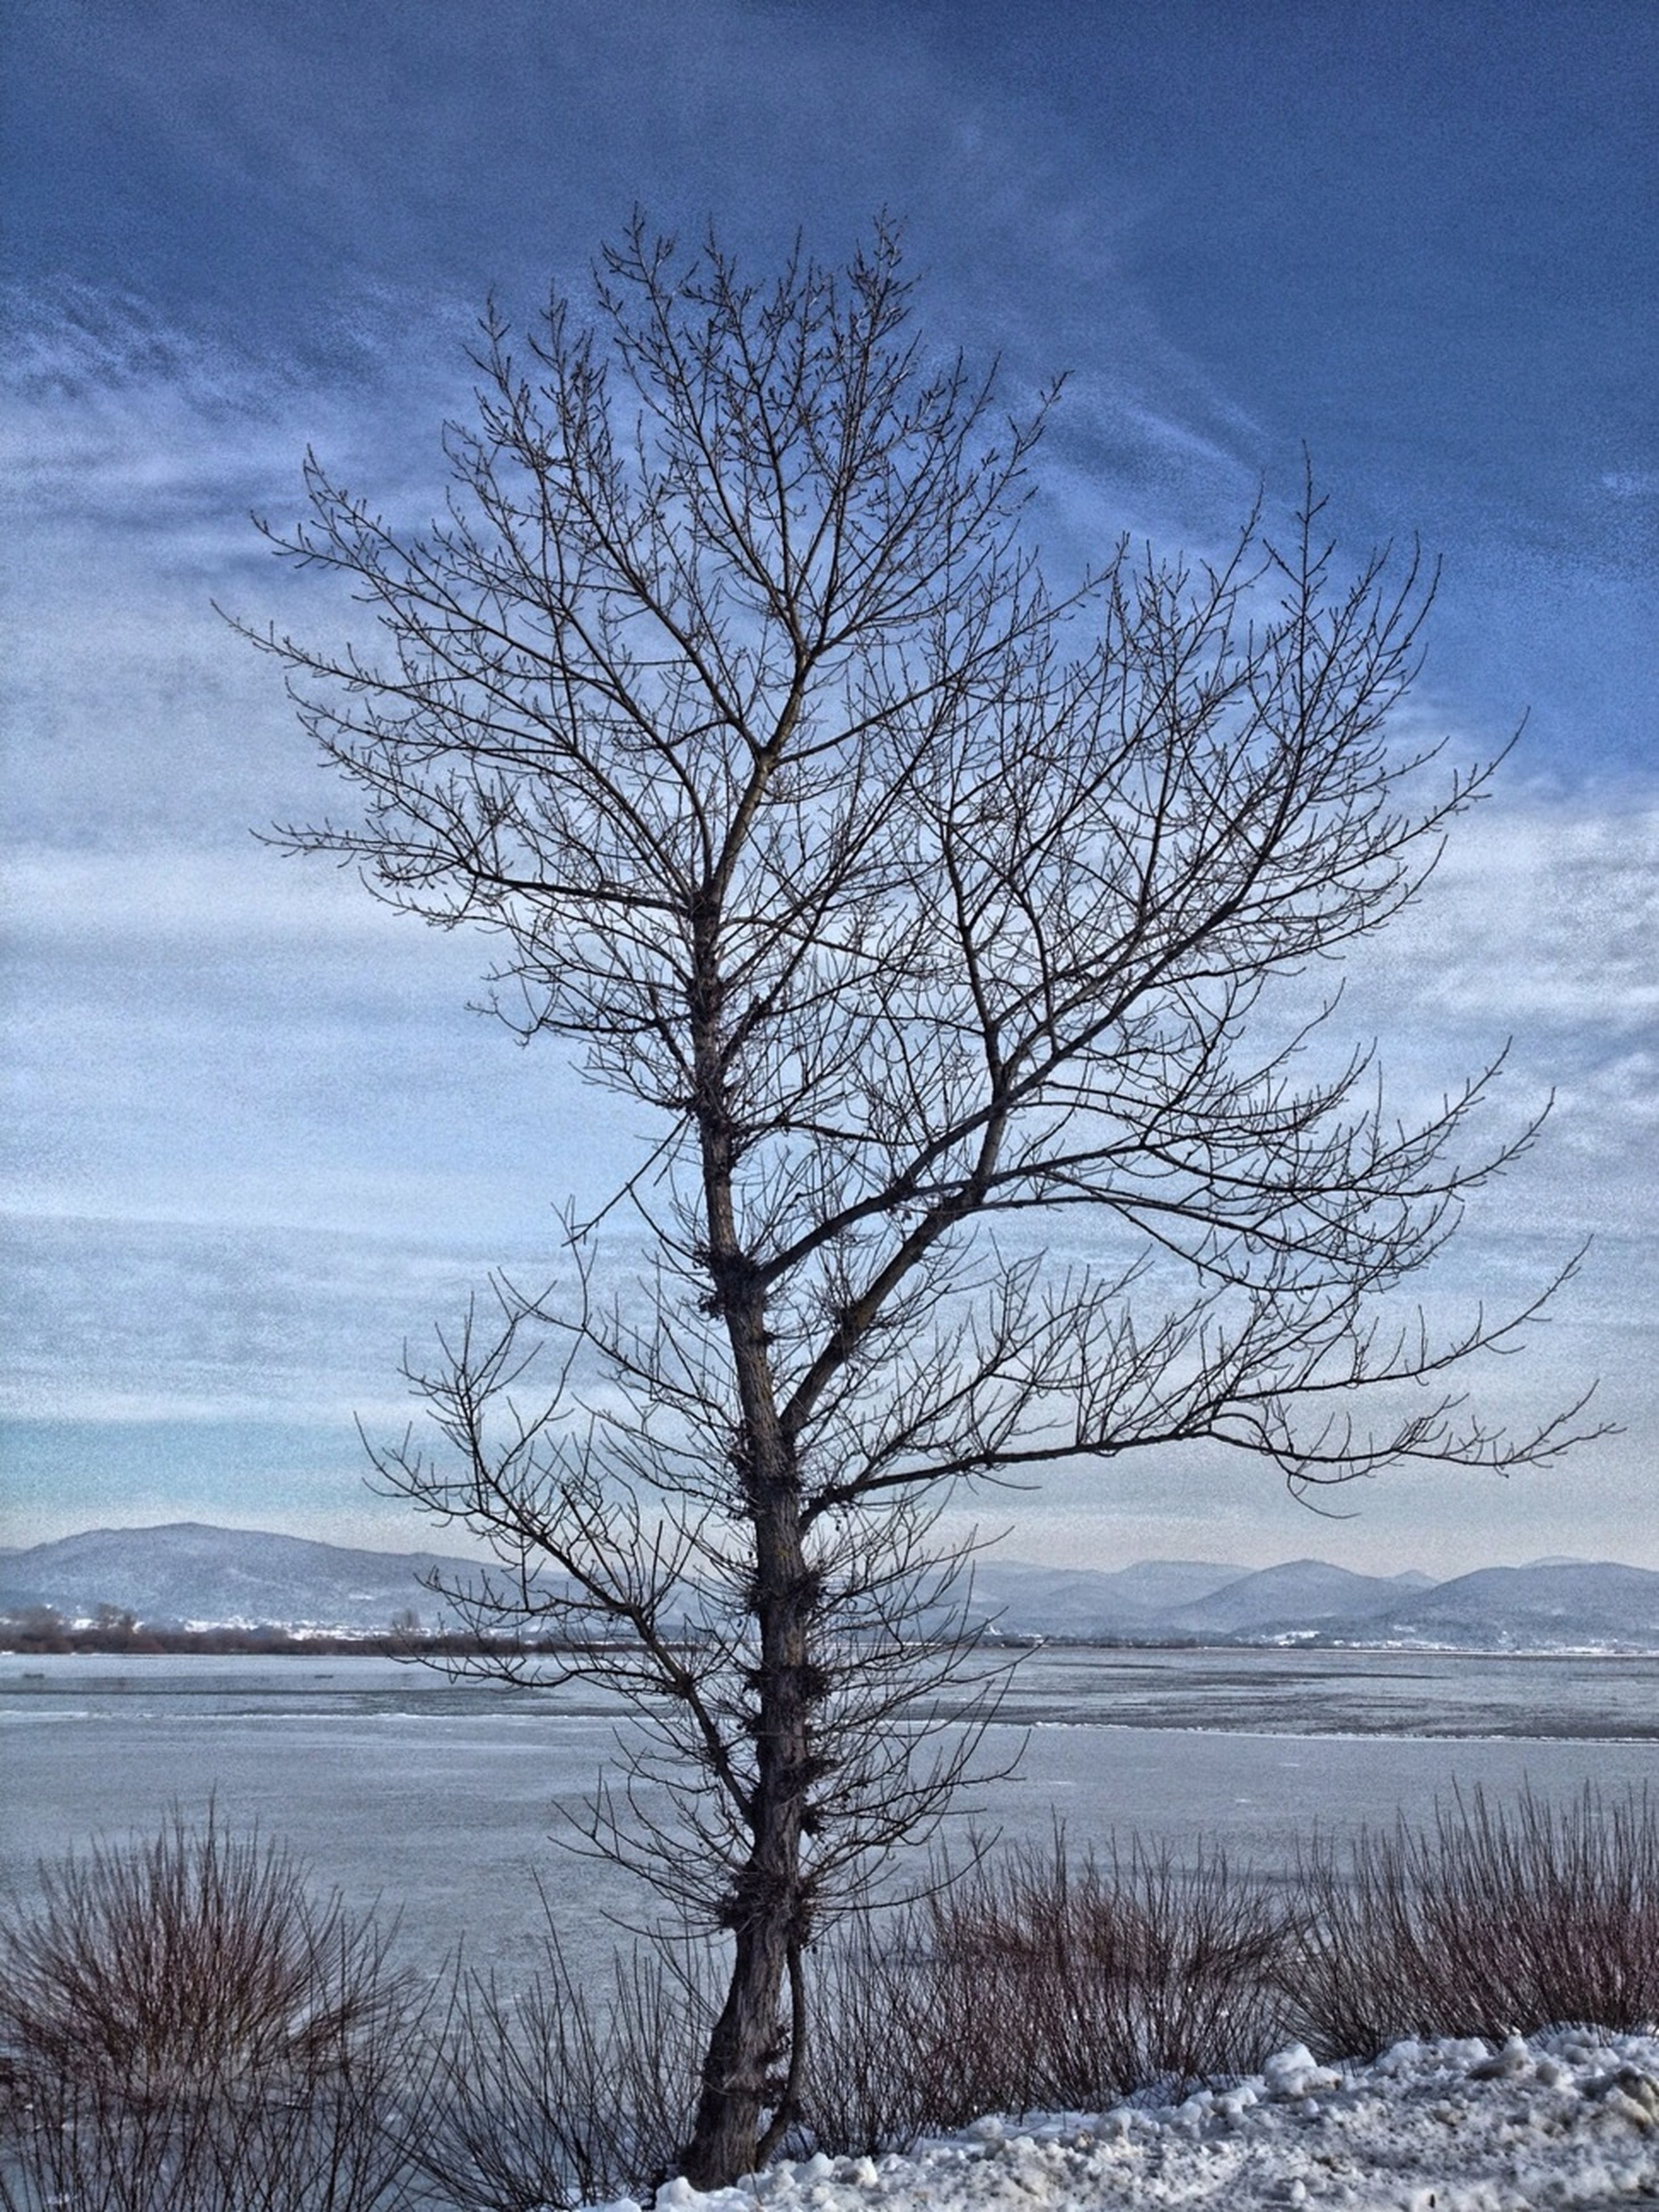 bare tree, tranquility, tranquil scene, winter, sky, snow, scenics, branch, tree, cold temperature, beauty in nature, nature, landscape, field, water, lake, non-urban scene, cloud - sky, weather, outdoors